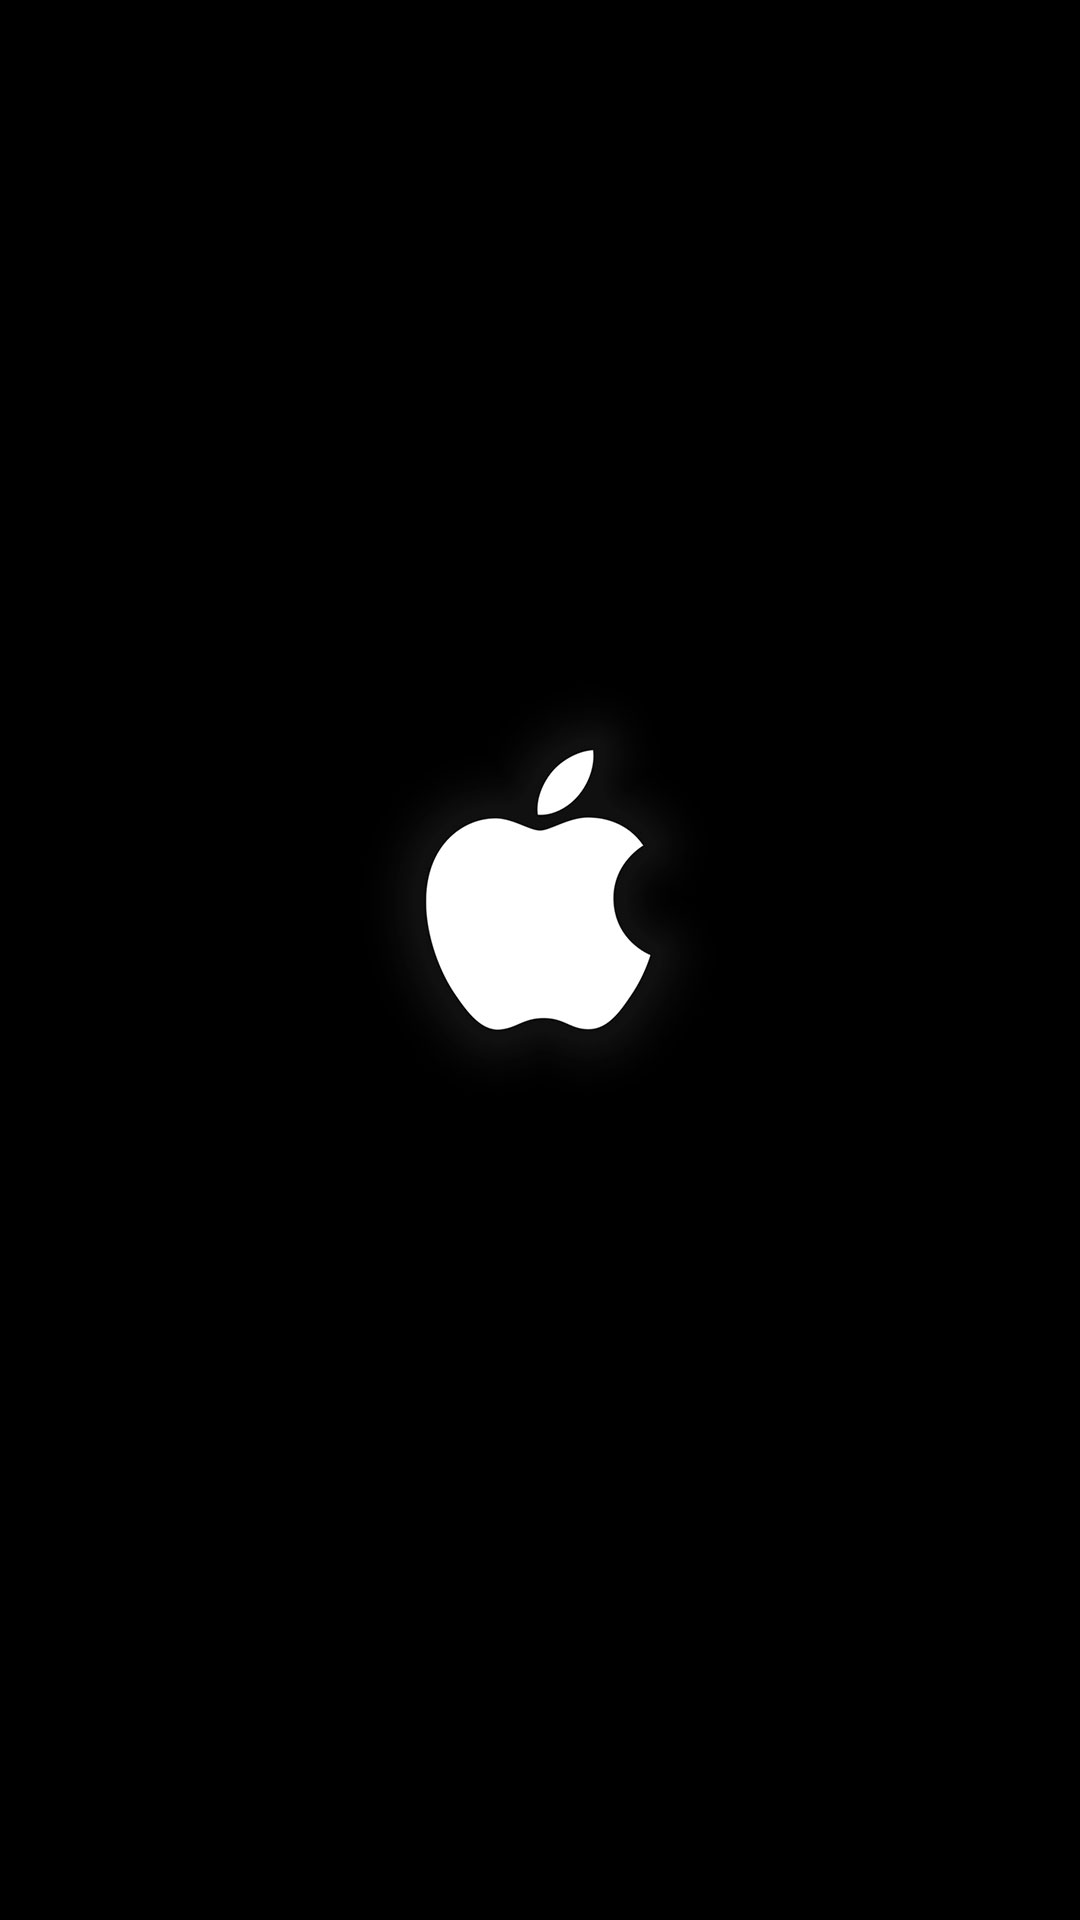 iPhone wallpaper apple logo black Apple Logo